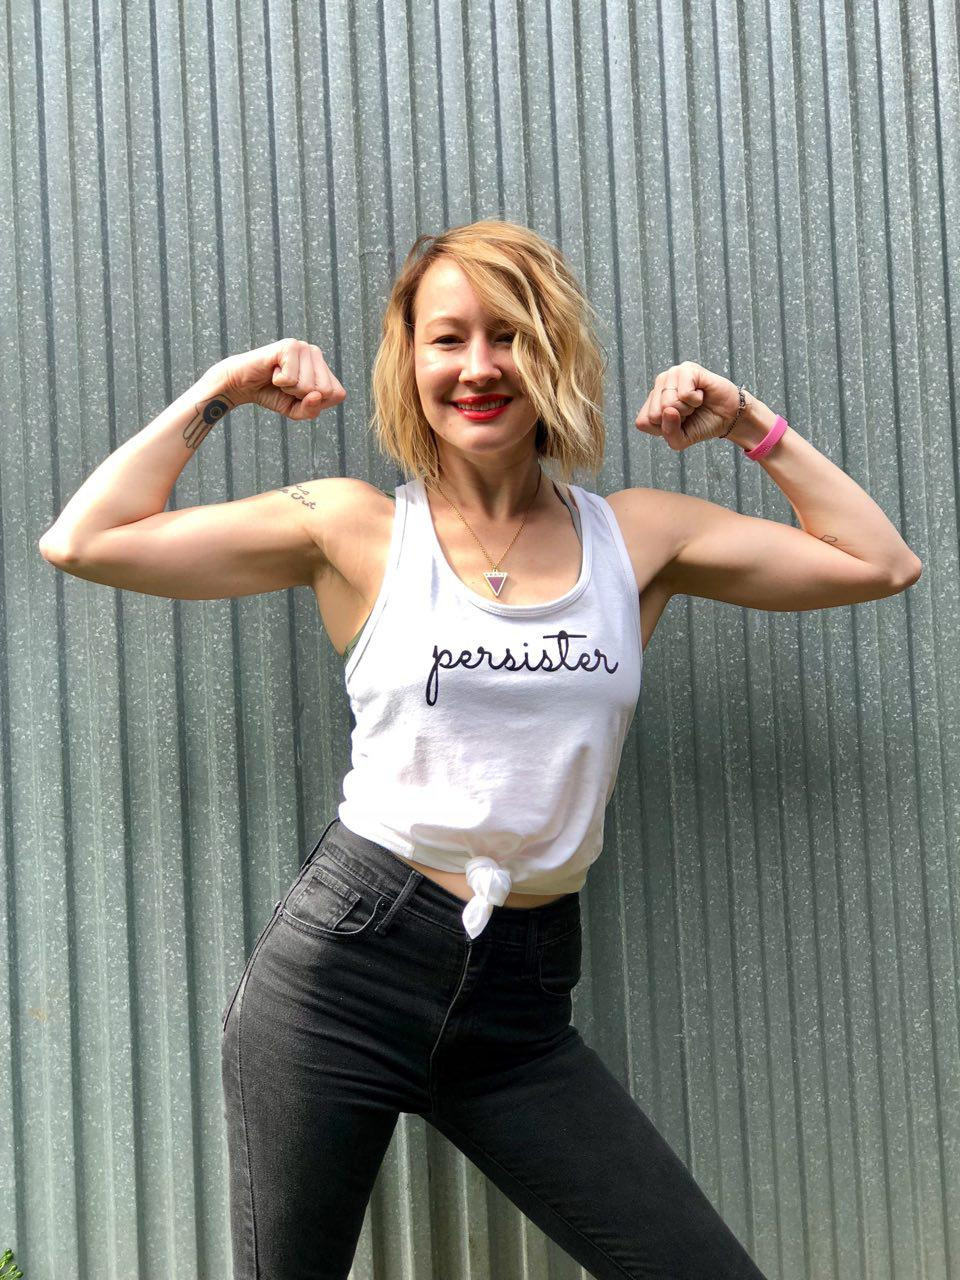 Christalle flexing and wearing Persister tank